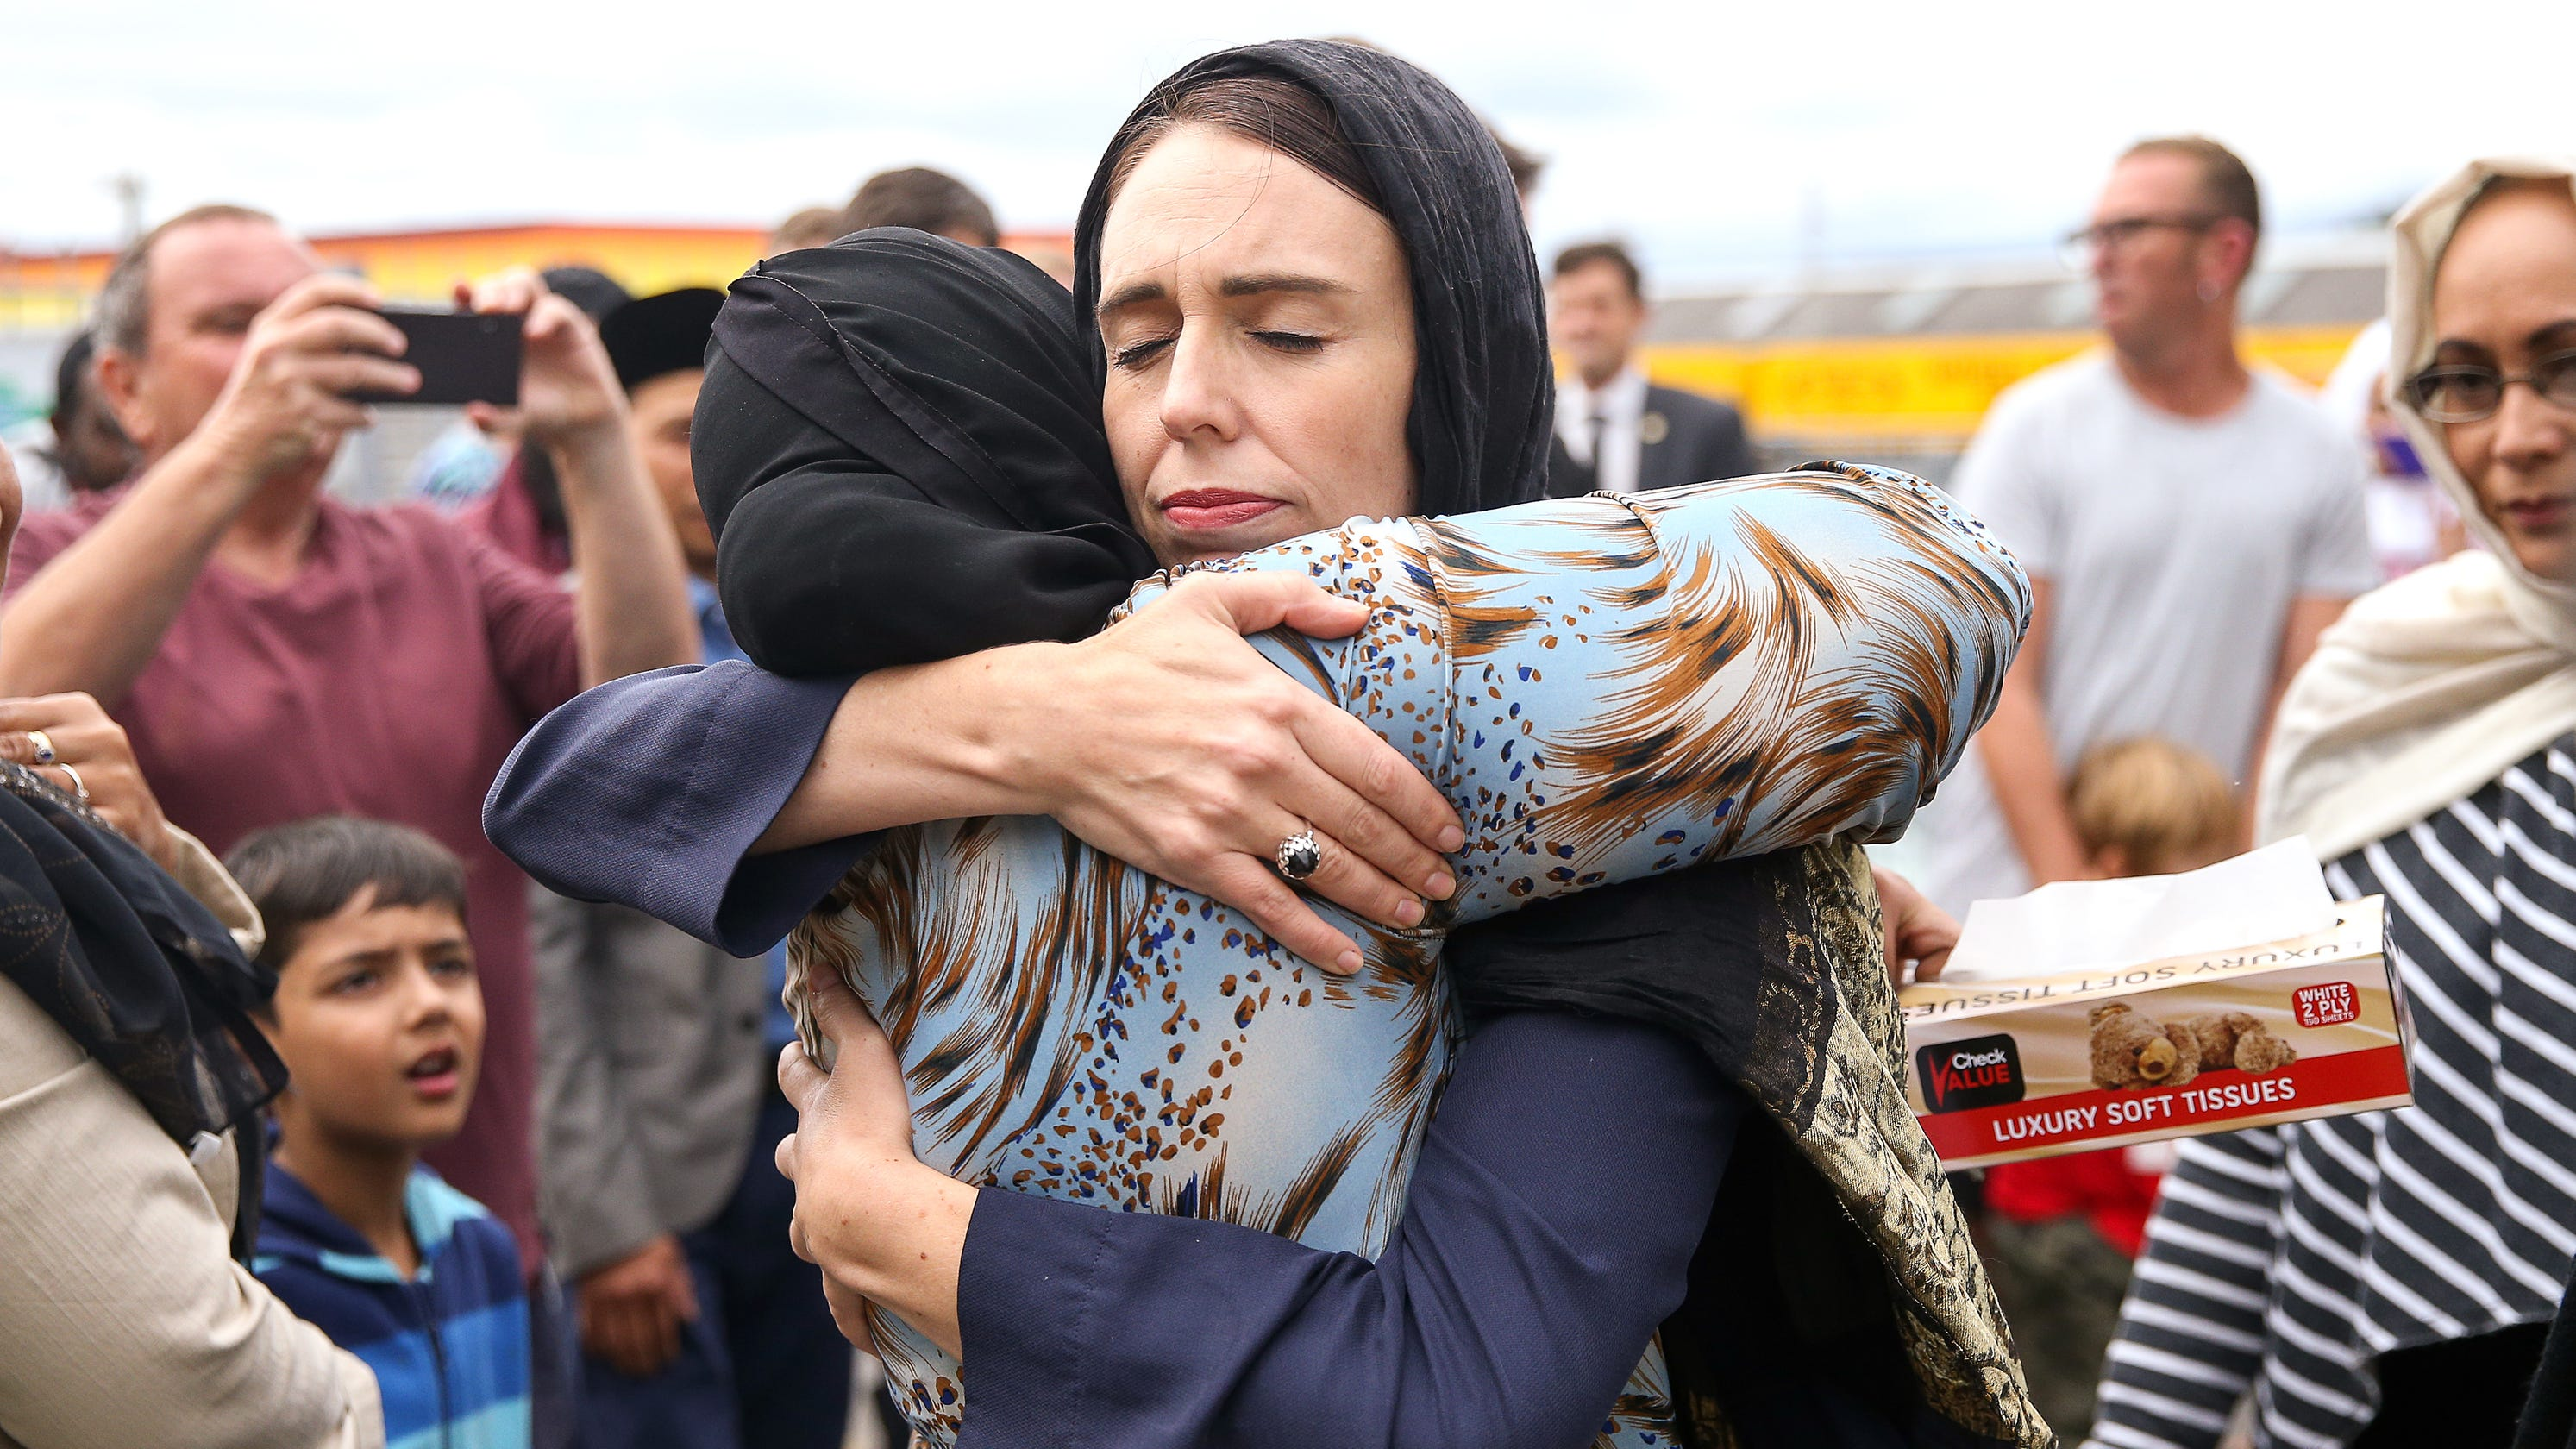 New Zealanders have  turned in more than 10,000 guns after mass shooting in Christchurch